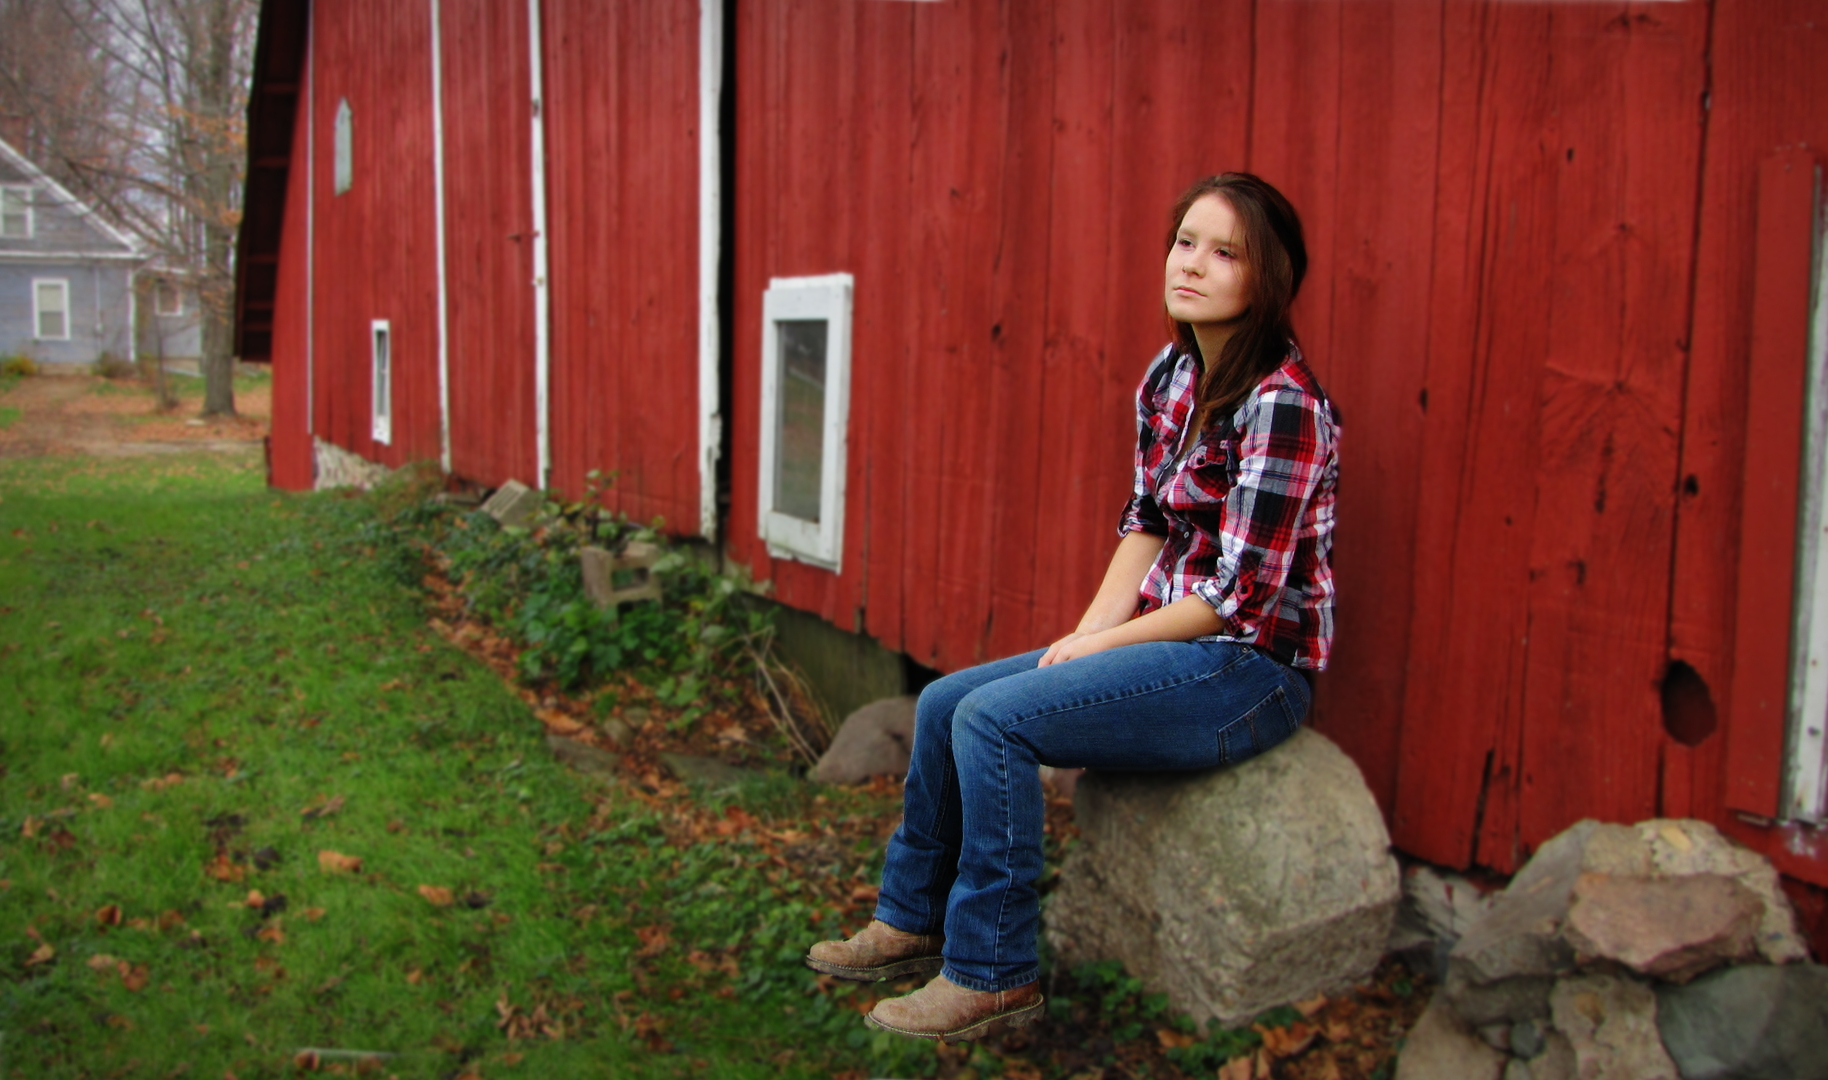 Sitting by the Red Barn